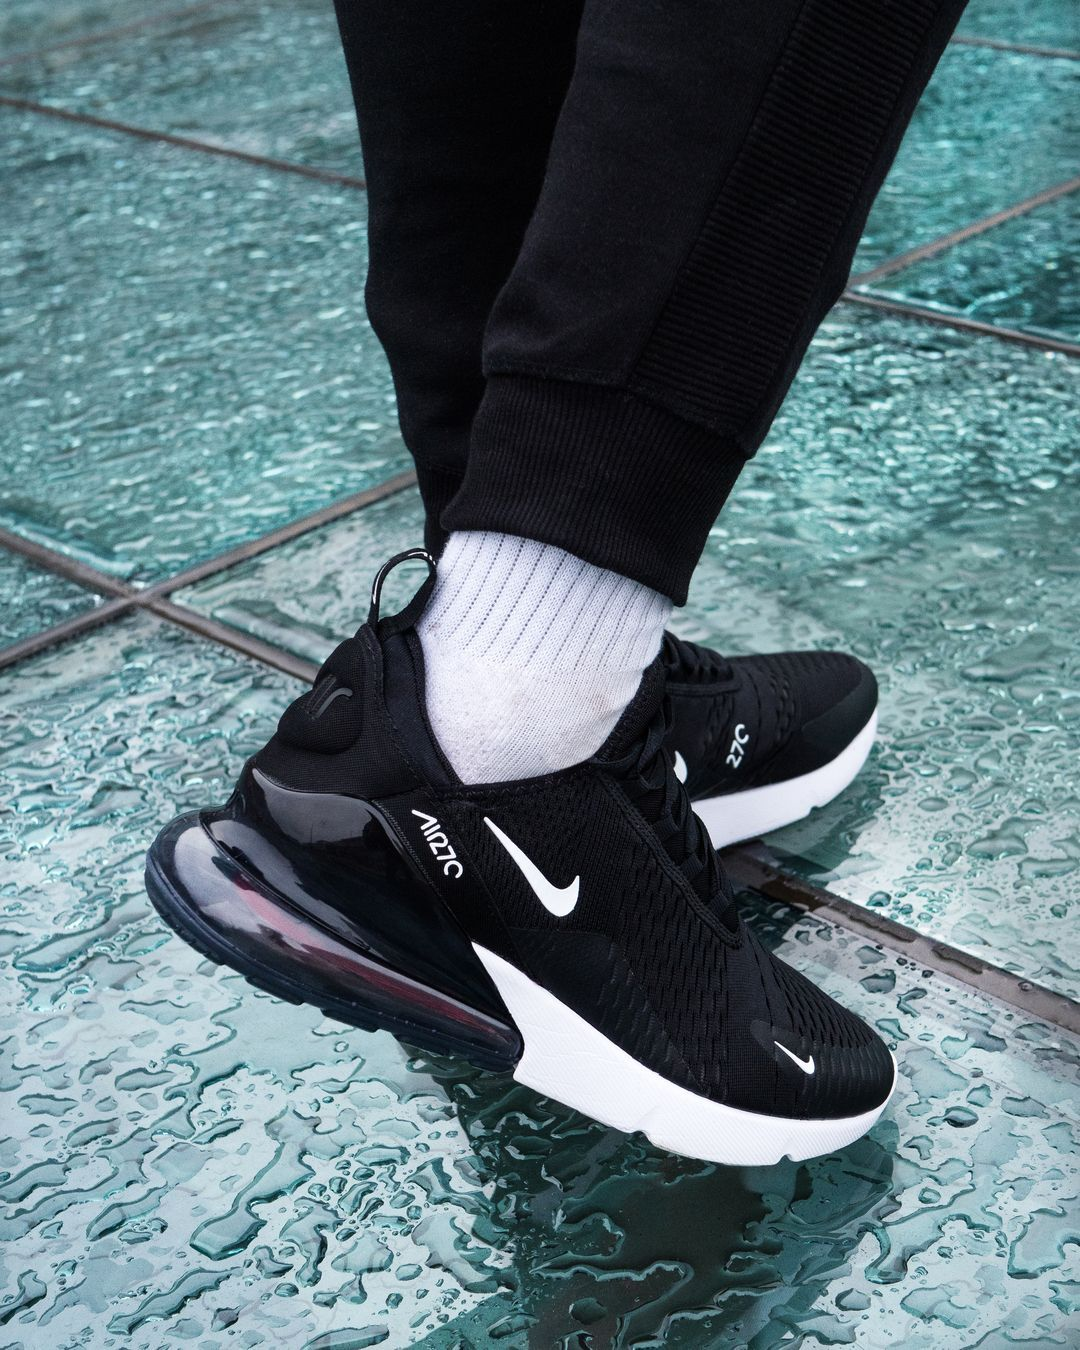 half off 016ba 43ccb Nike Air Max 270 Black and Anthracite White | Shoes in 2019 ...